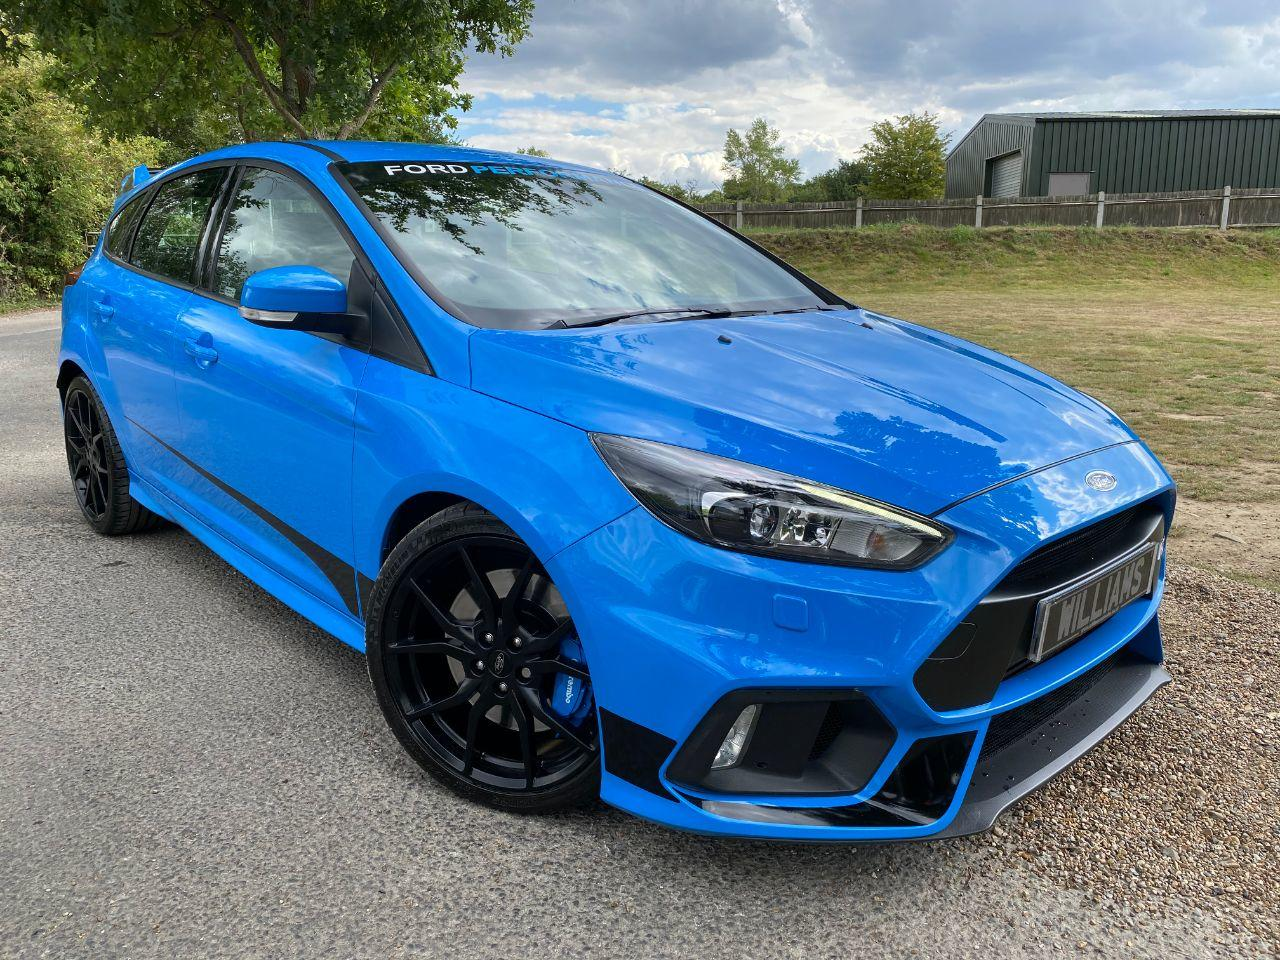 Ford Focus Rs 2.3 EcoBoost 5dr (19in Aloys! SONY DAB Nav! ++) Hatchback Petrol Nitrous Blue Metallic